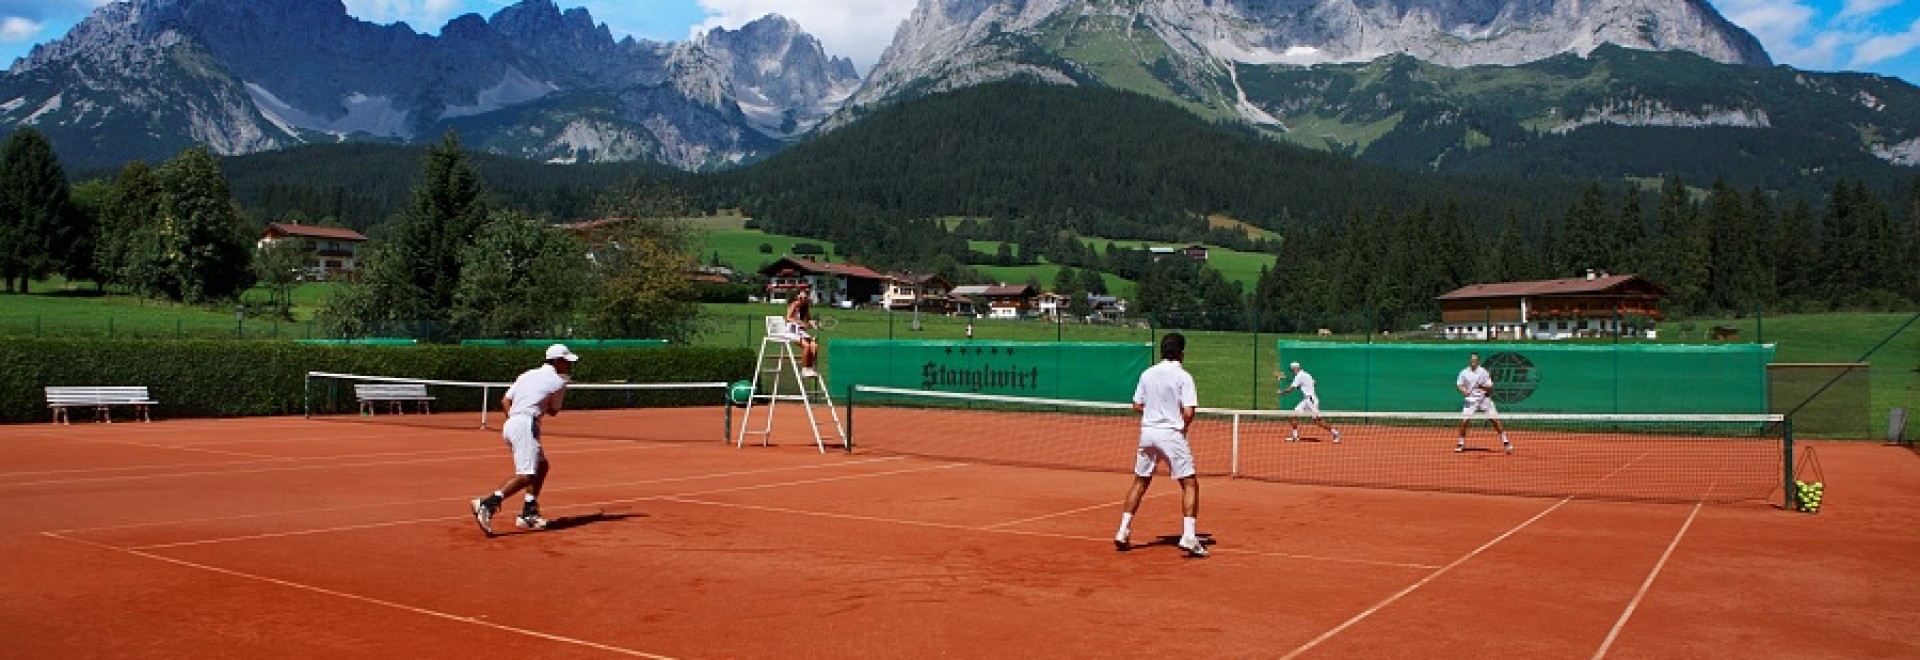 PBI WORLD TENNIS CAMP - Bio Hotel Stanglwirt